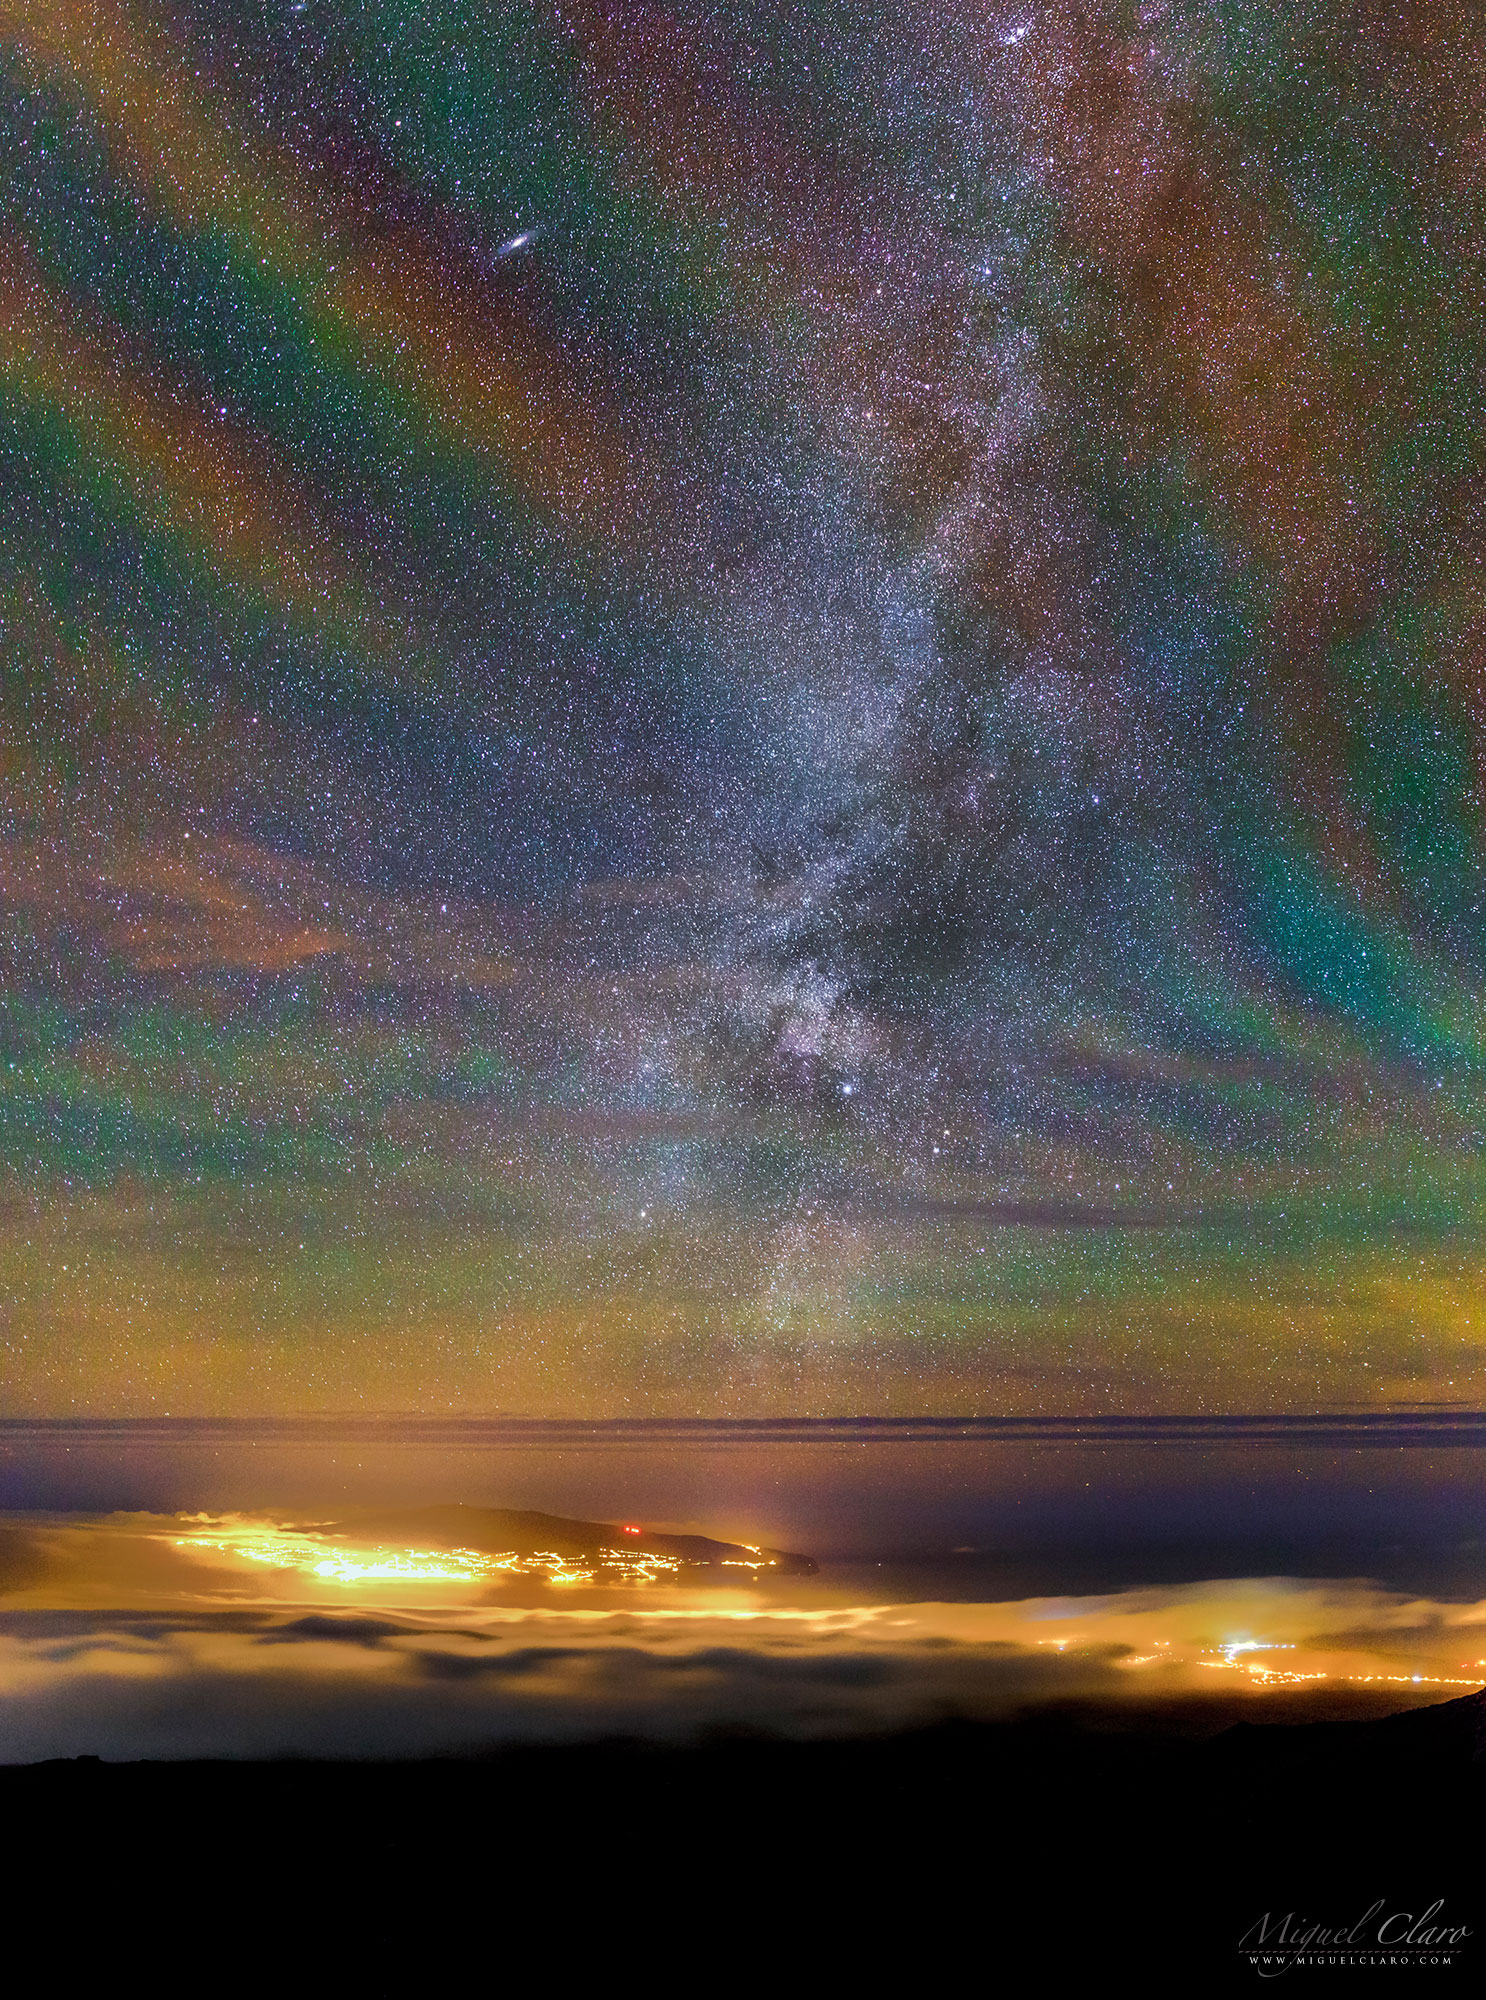 Apod 2016 March 22 Rainbow Airglow Over The Azores